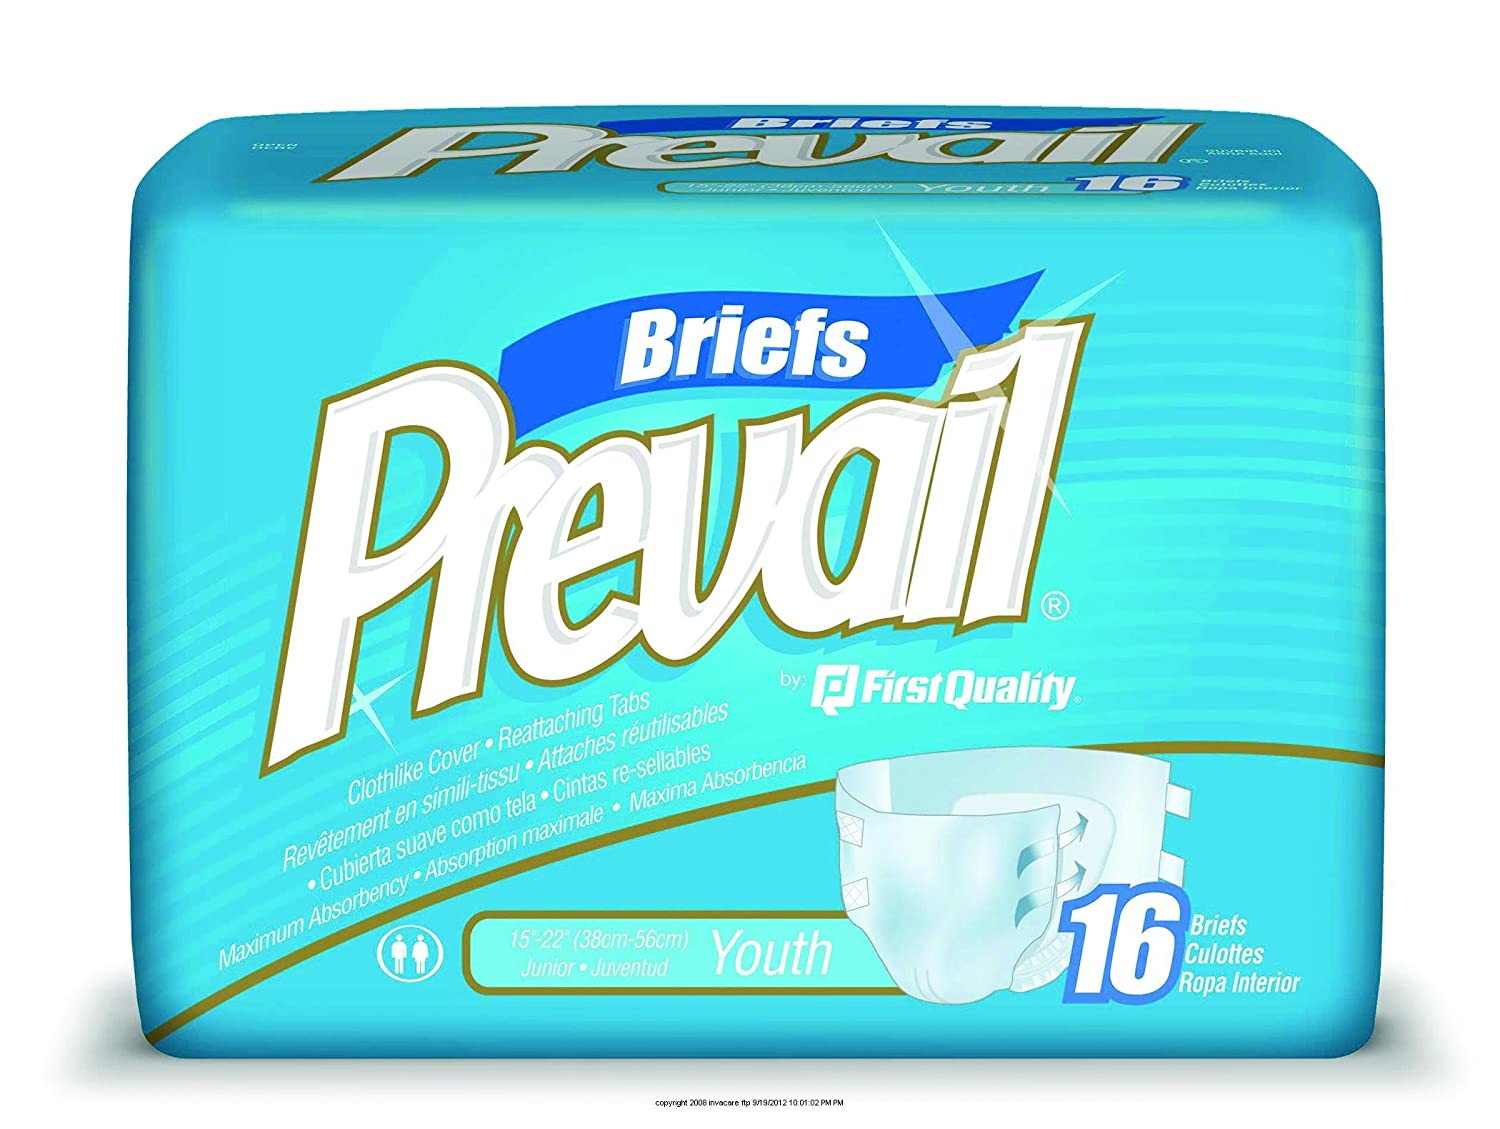 Amazon.com : Prevail Specialty Briefs [PREVAIL YOUTH BRIEF] : Incontinence Protective Underwear : Beauty